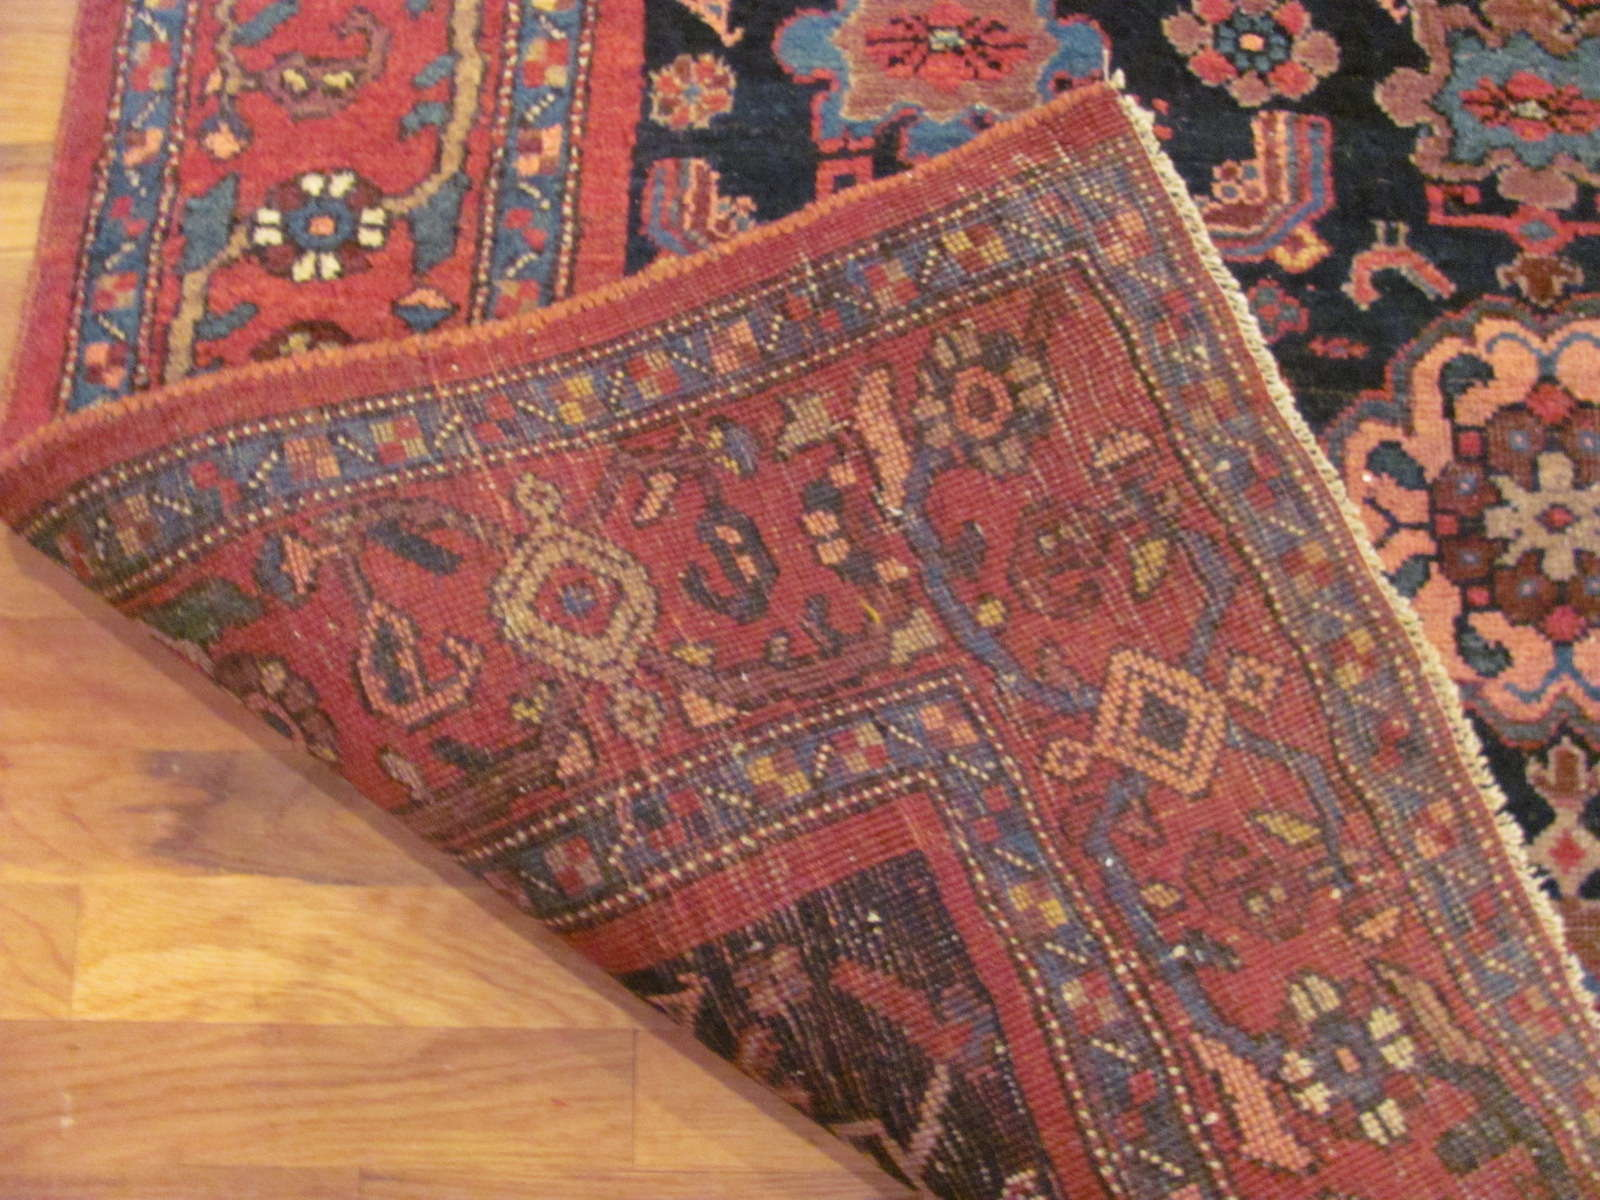 24611 antique bidjar persian rug 4,4 x 6,5 -2